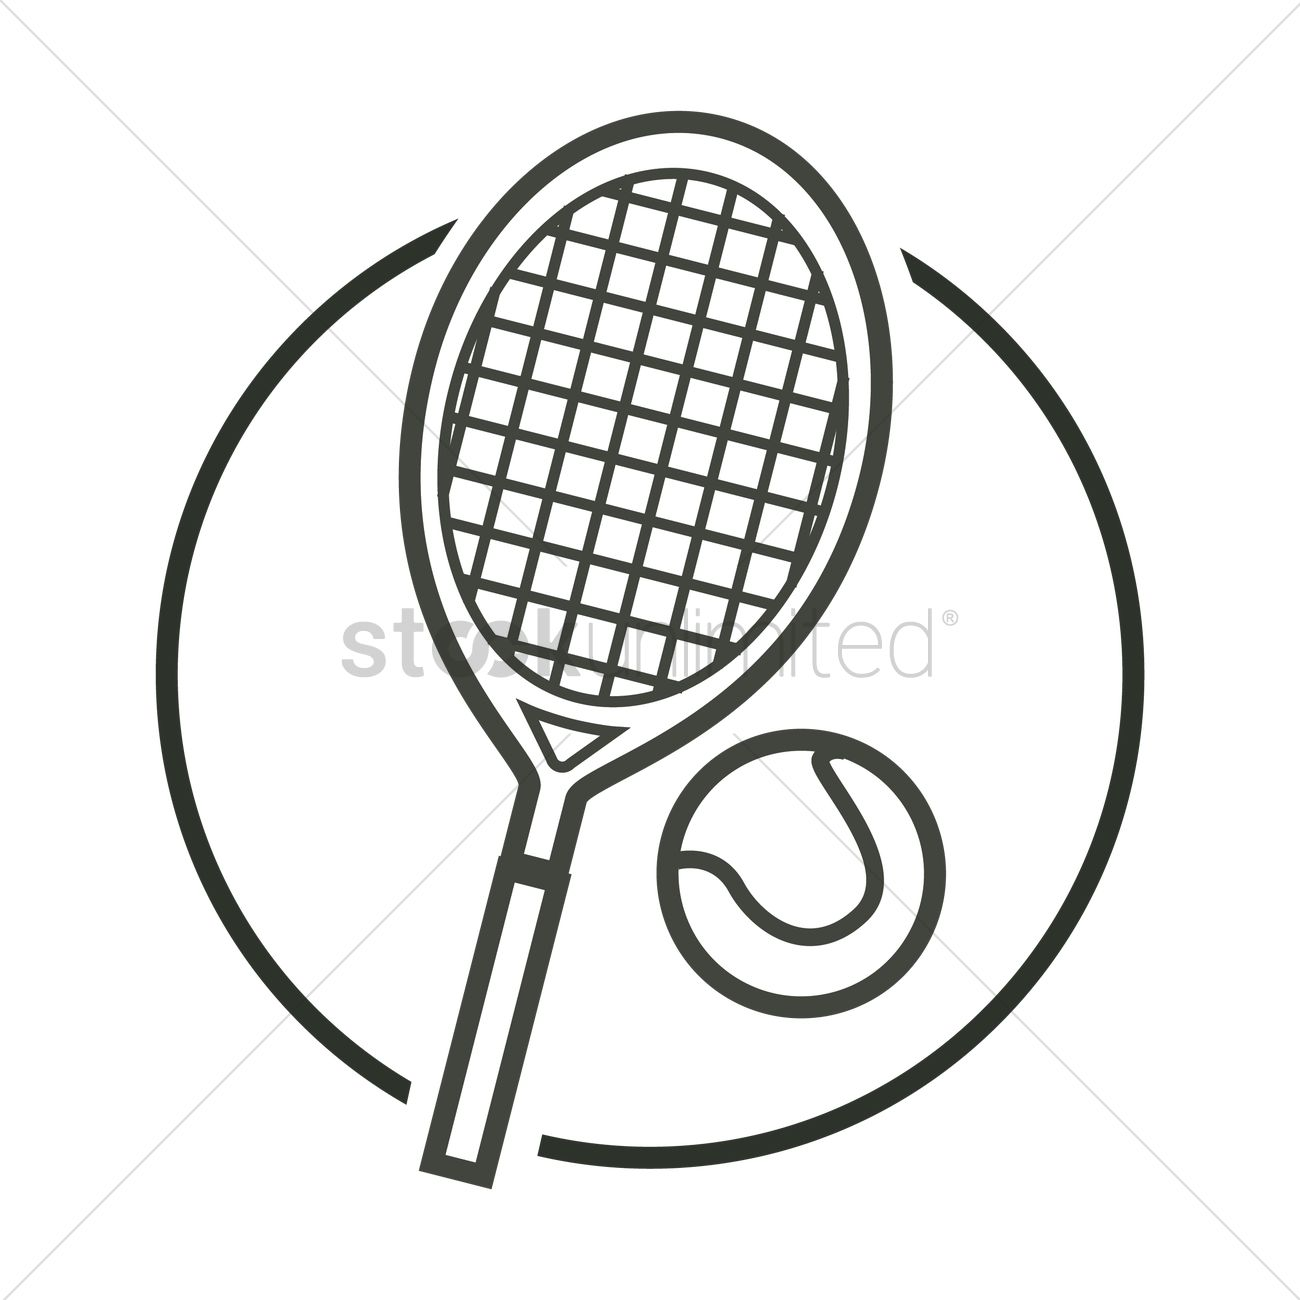 Tennis Racket And Ball Vector Image 1974391 Stockunlimited